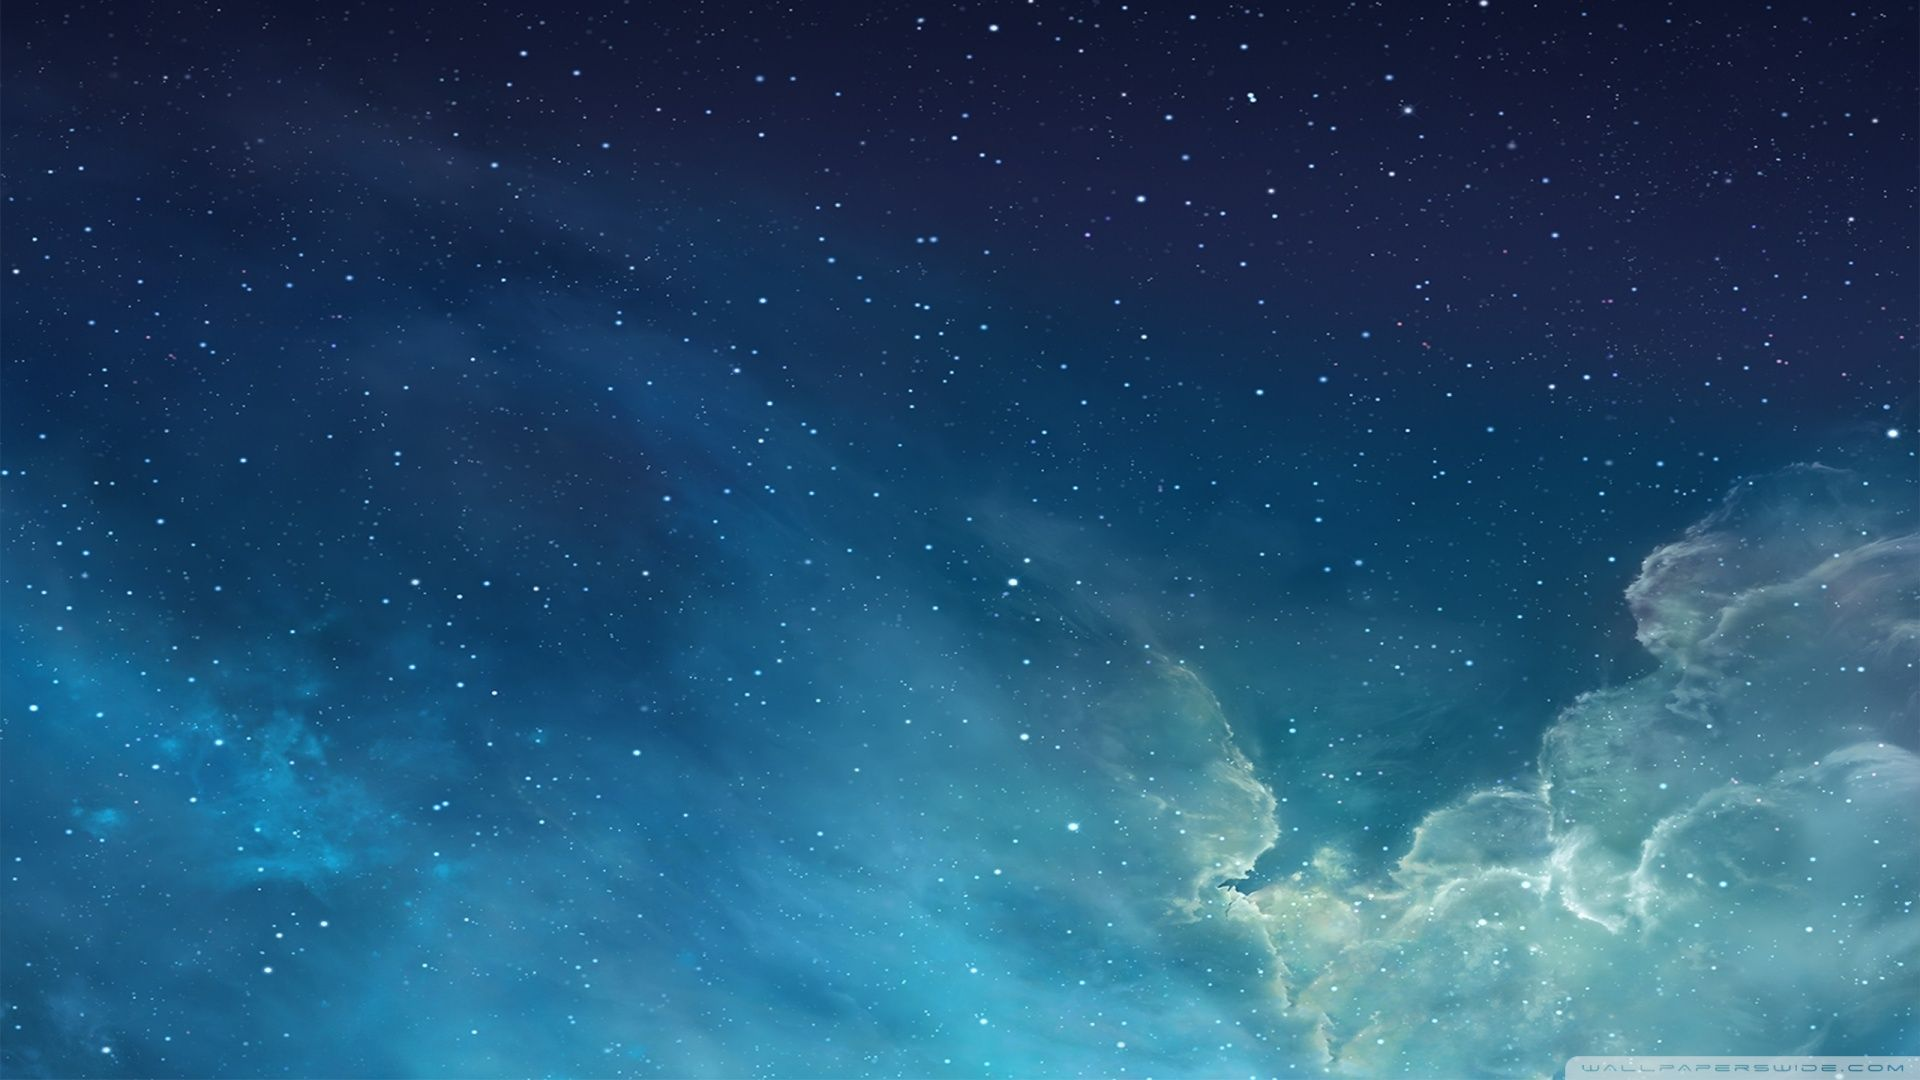 ios 7 galaxy hd desktop wallpaper : high definition : fullscreen